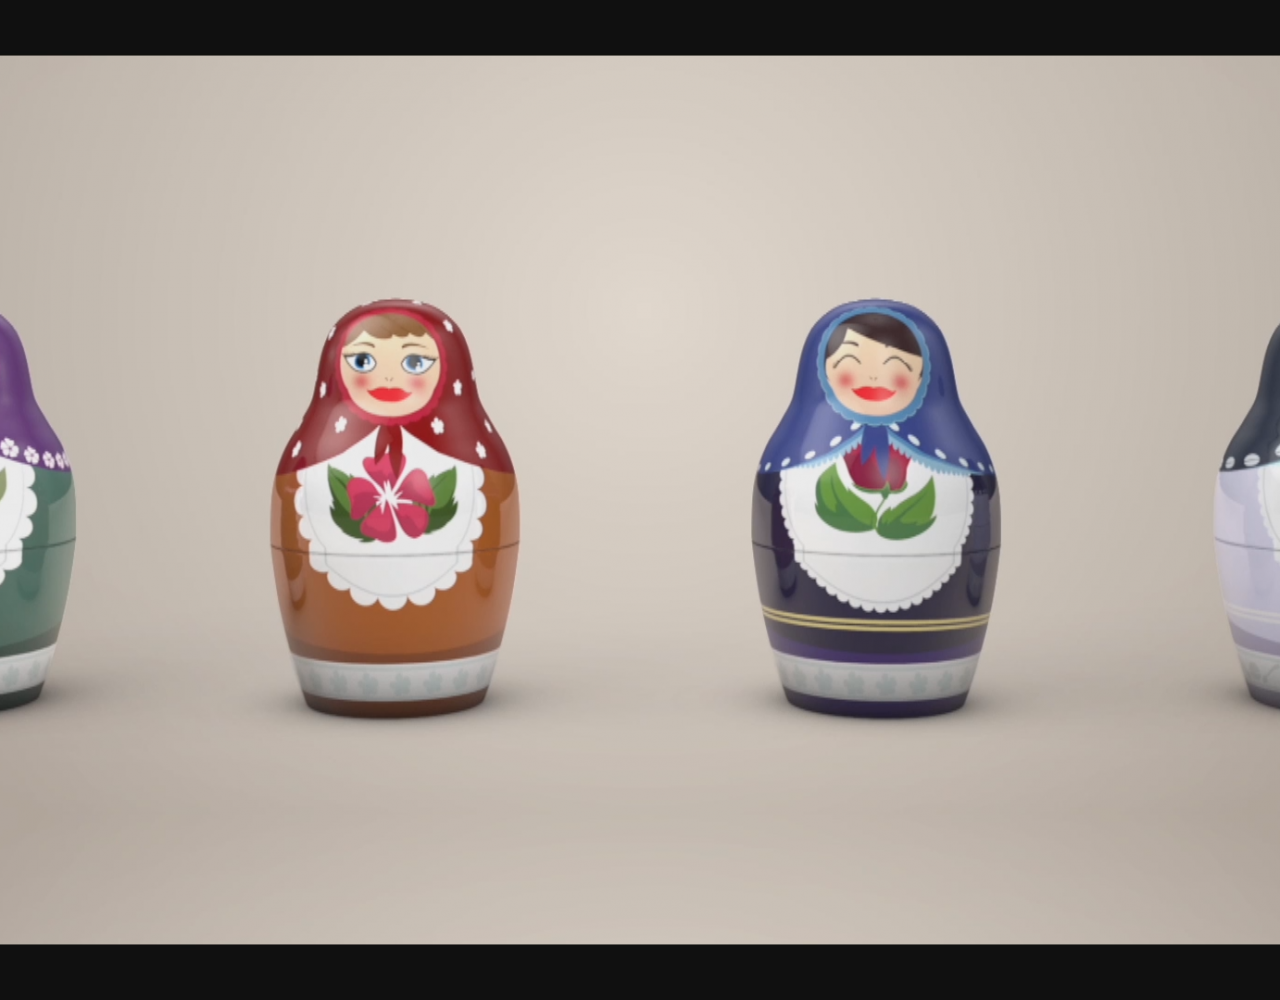 ve-matrioshka